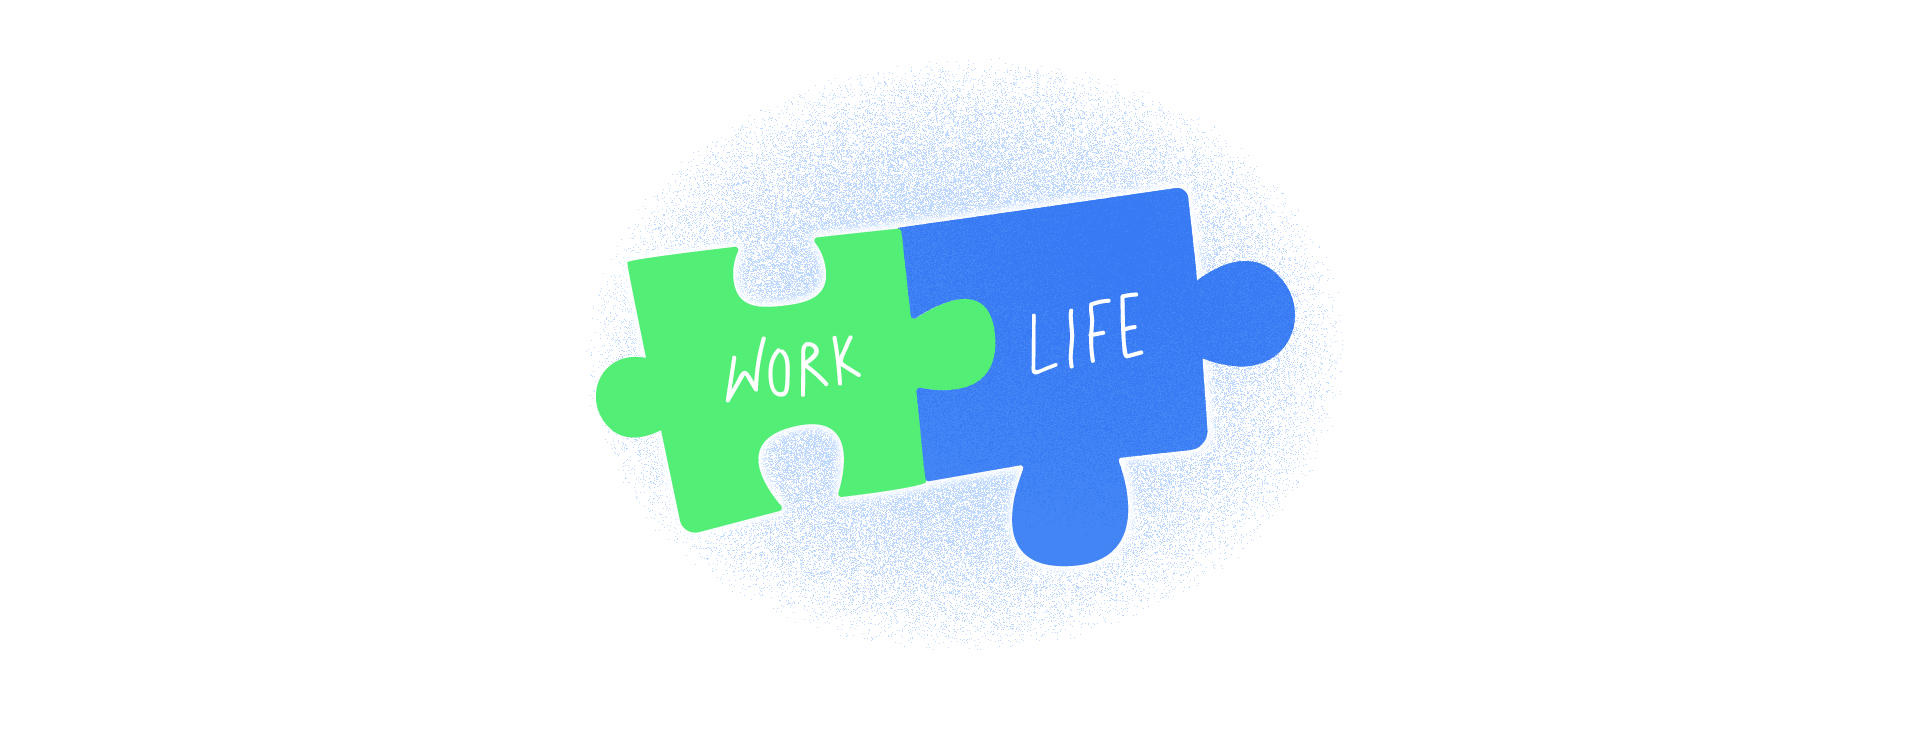 When you leave work at work, you have more time to spend with your family and friends. It's not healthy to spend the lion's share of the day at work and come home exhausted and not in the mood to speak to anyone. Hence, for a better work-life balance, it's important to leave work at work.